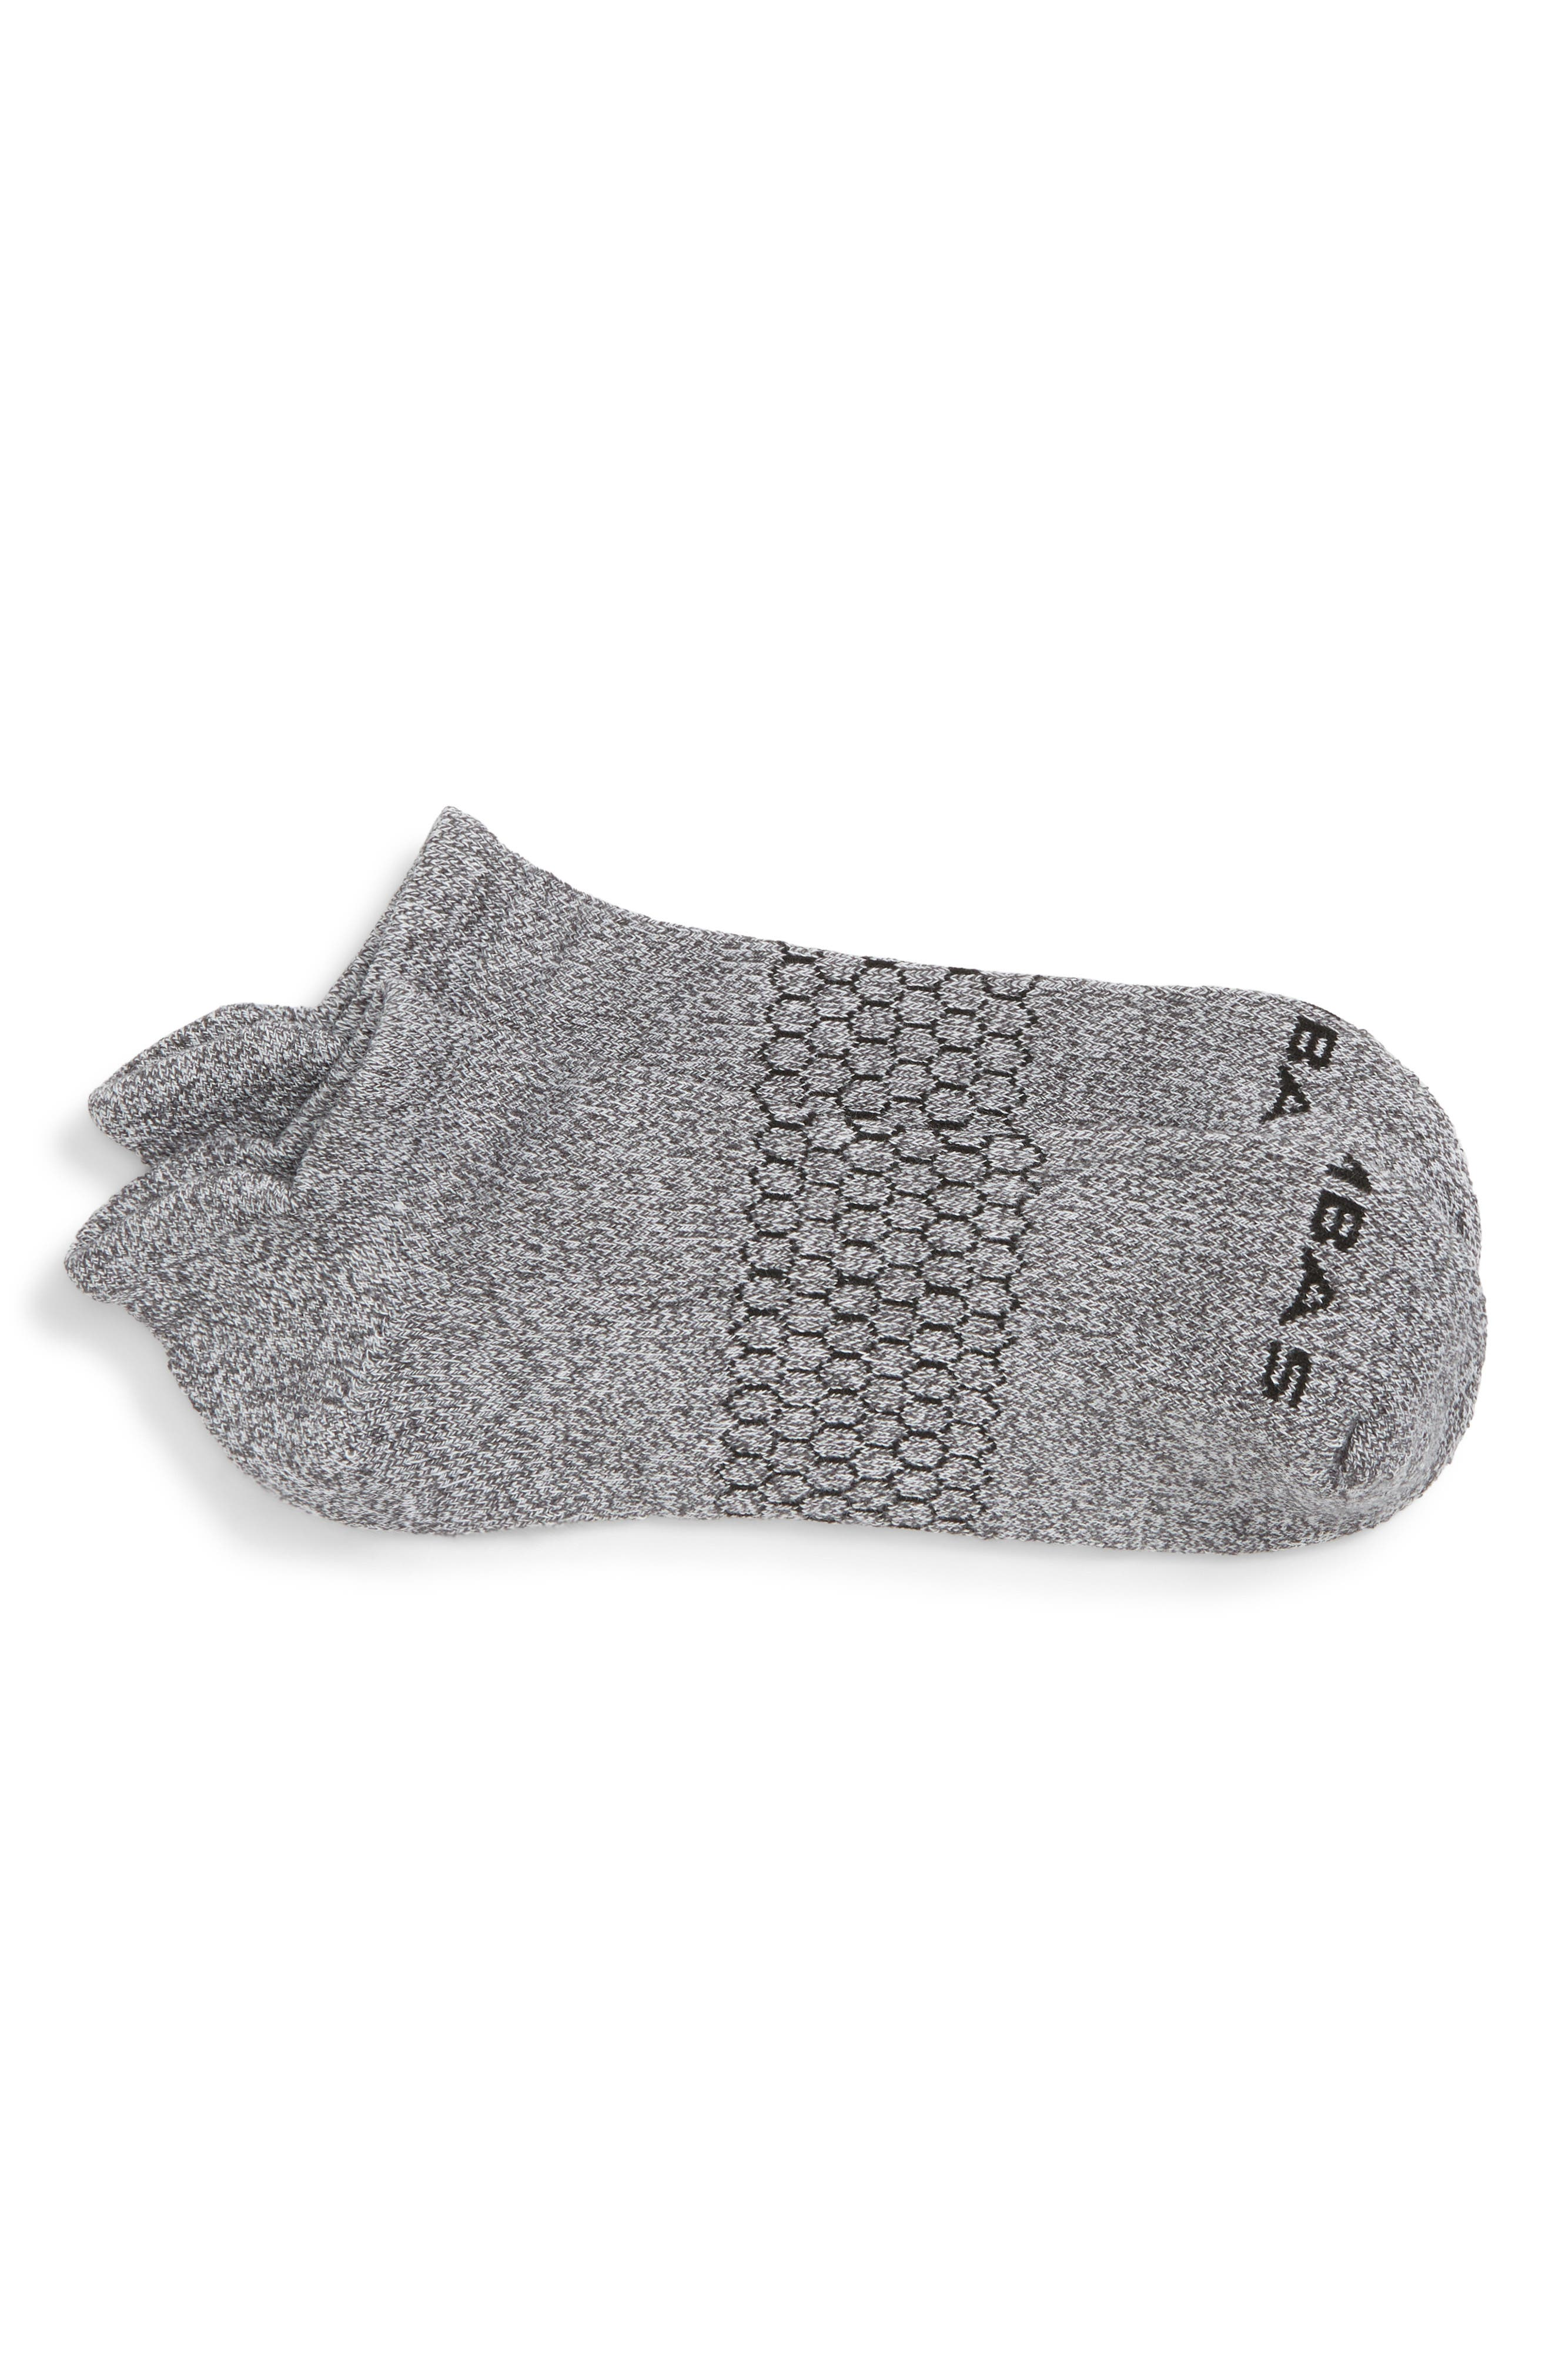 Marl Ankle Socks,                             Main thumbnail 1, color,                             Marled Light Charcoal